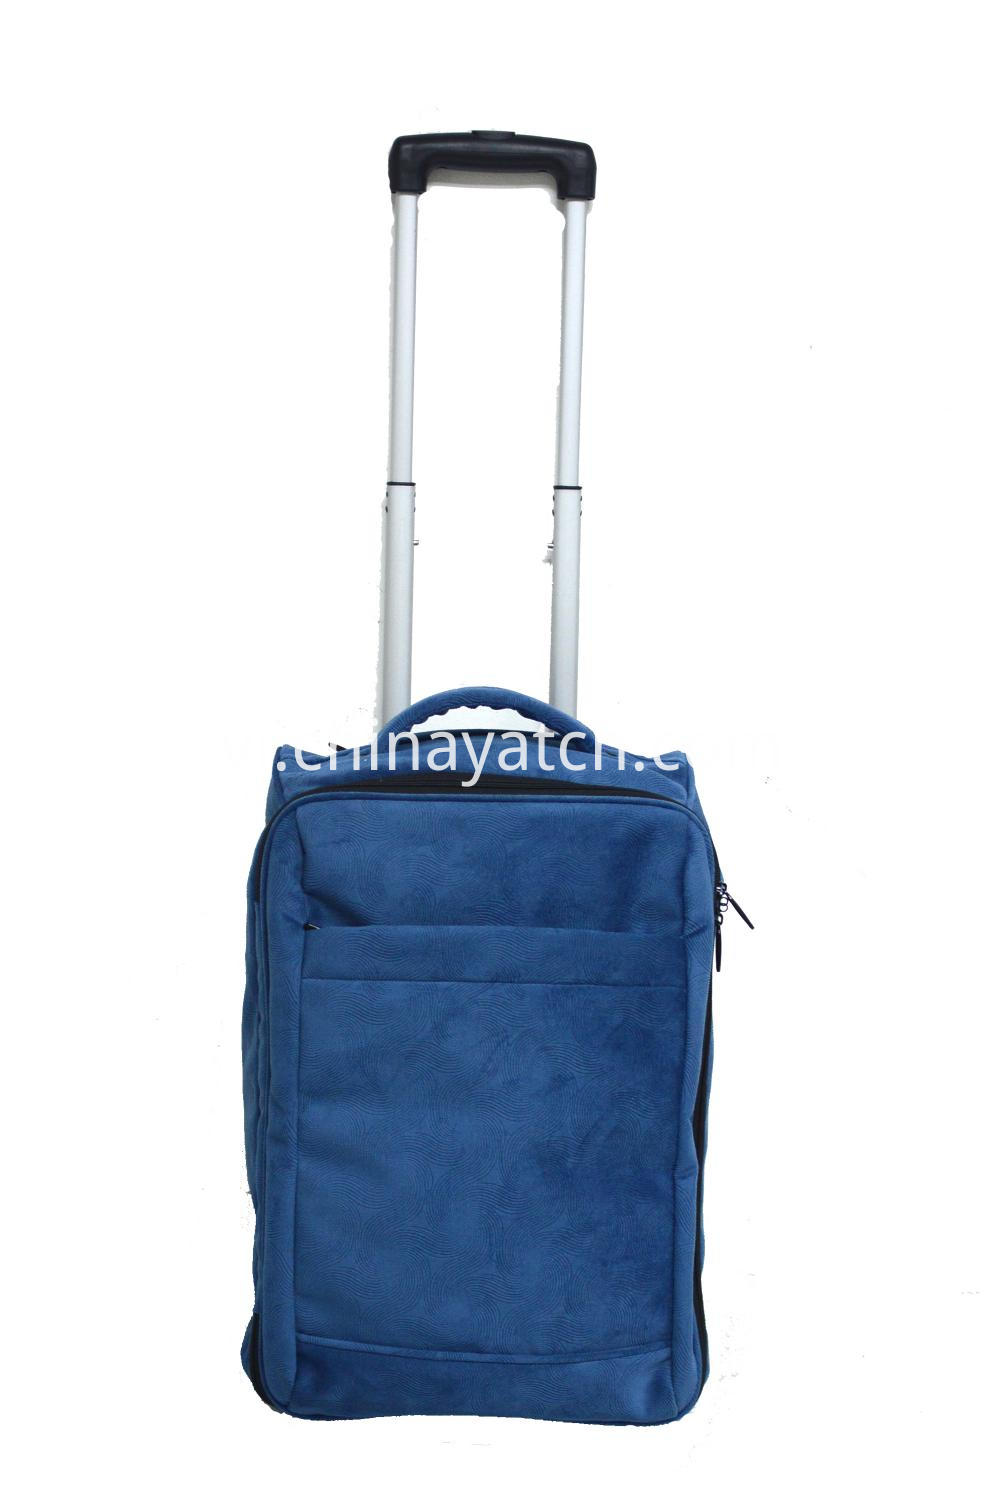 Carry On Trolley Bag